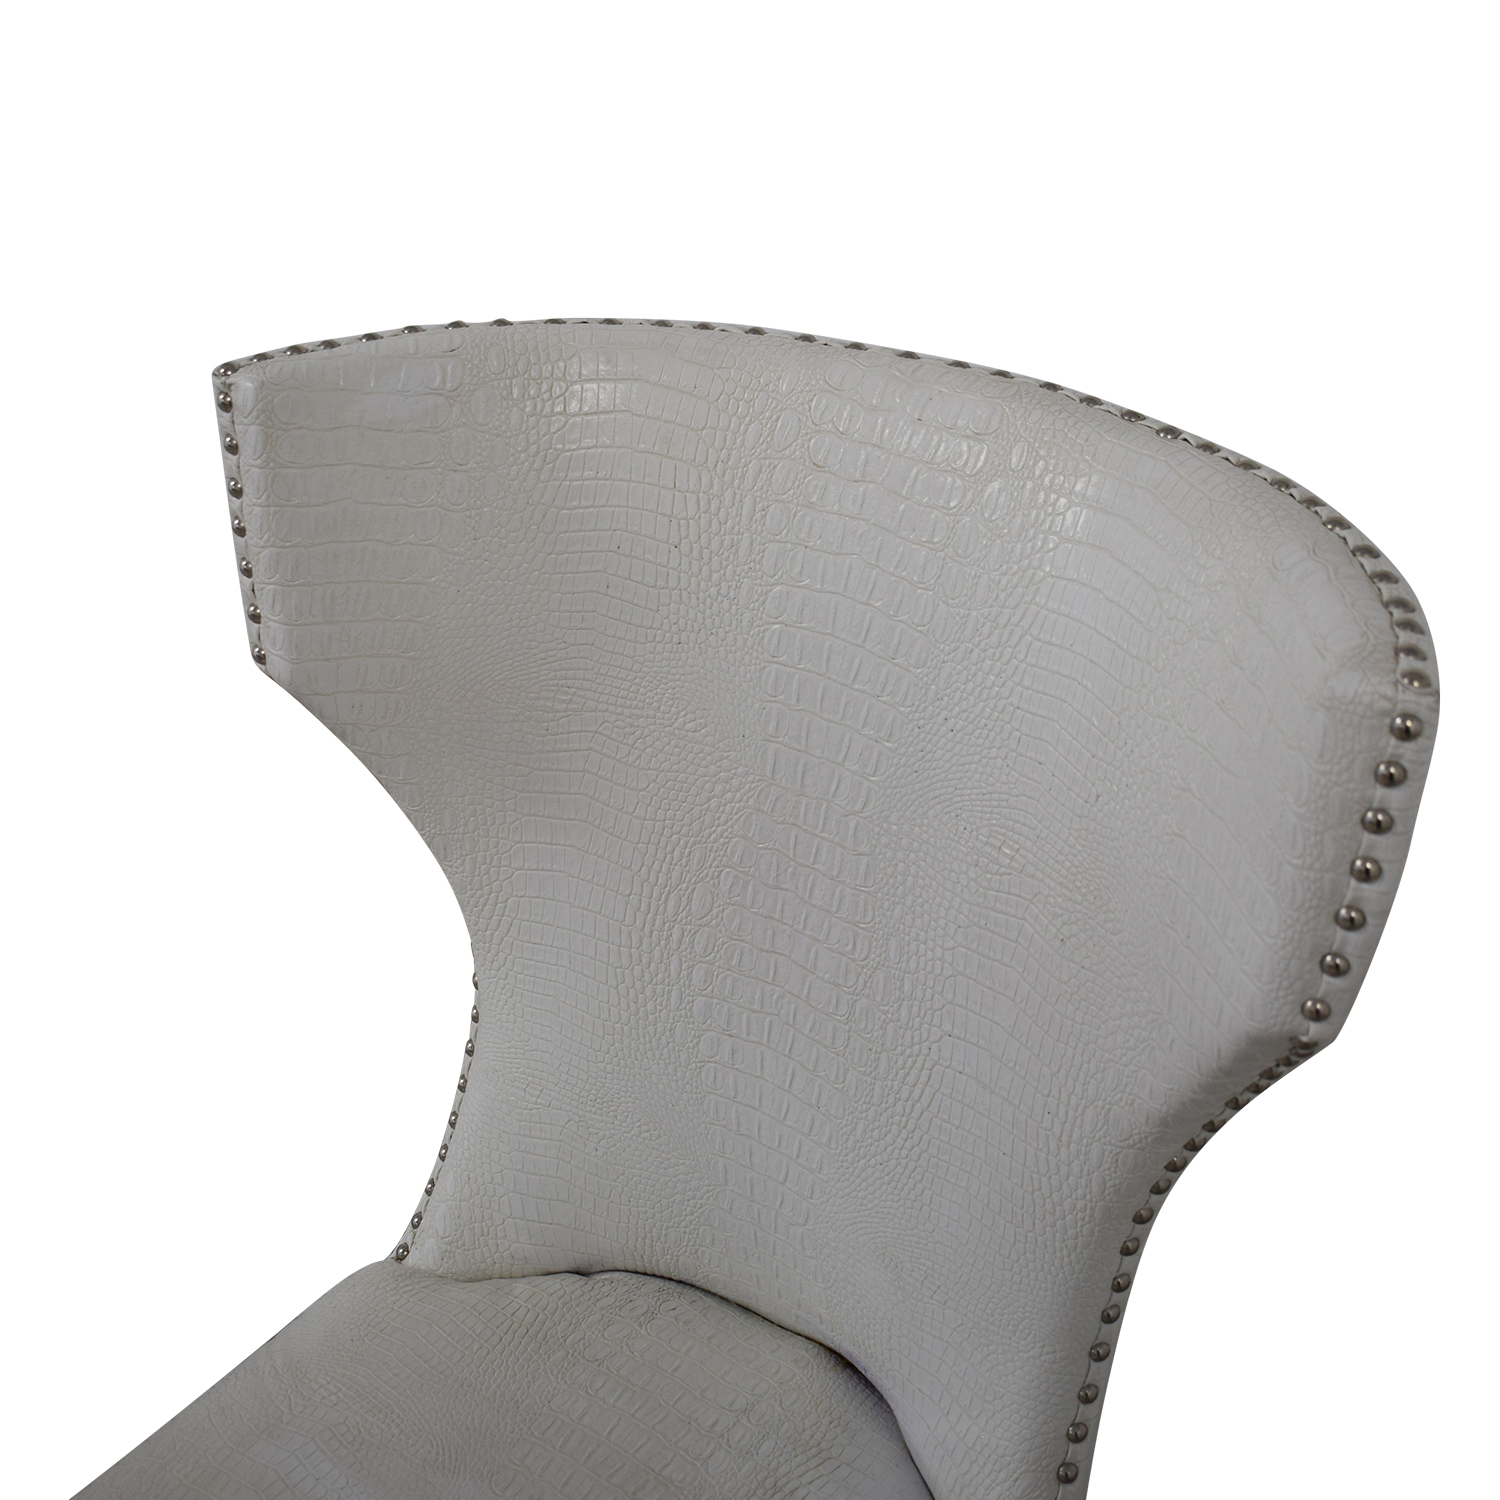 Shine by S.H.O Shine by S.H.O. Verona Chair price